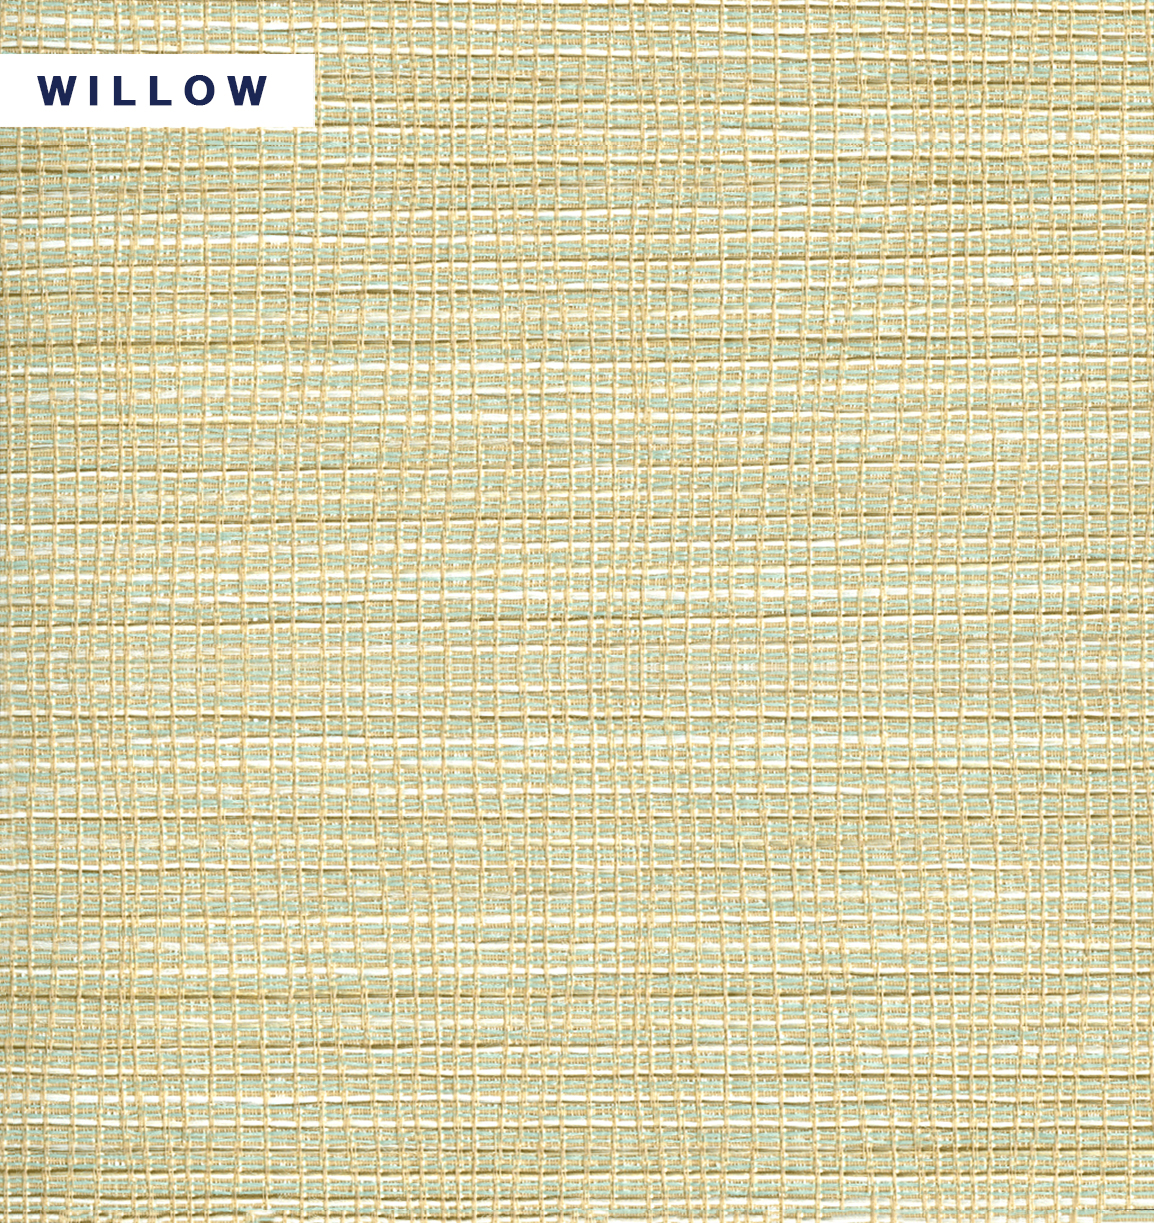 Seychelles - Willow.jpg